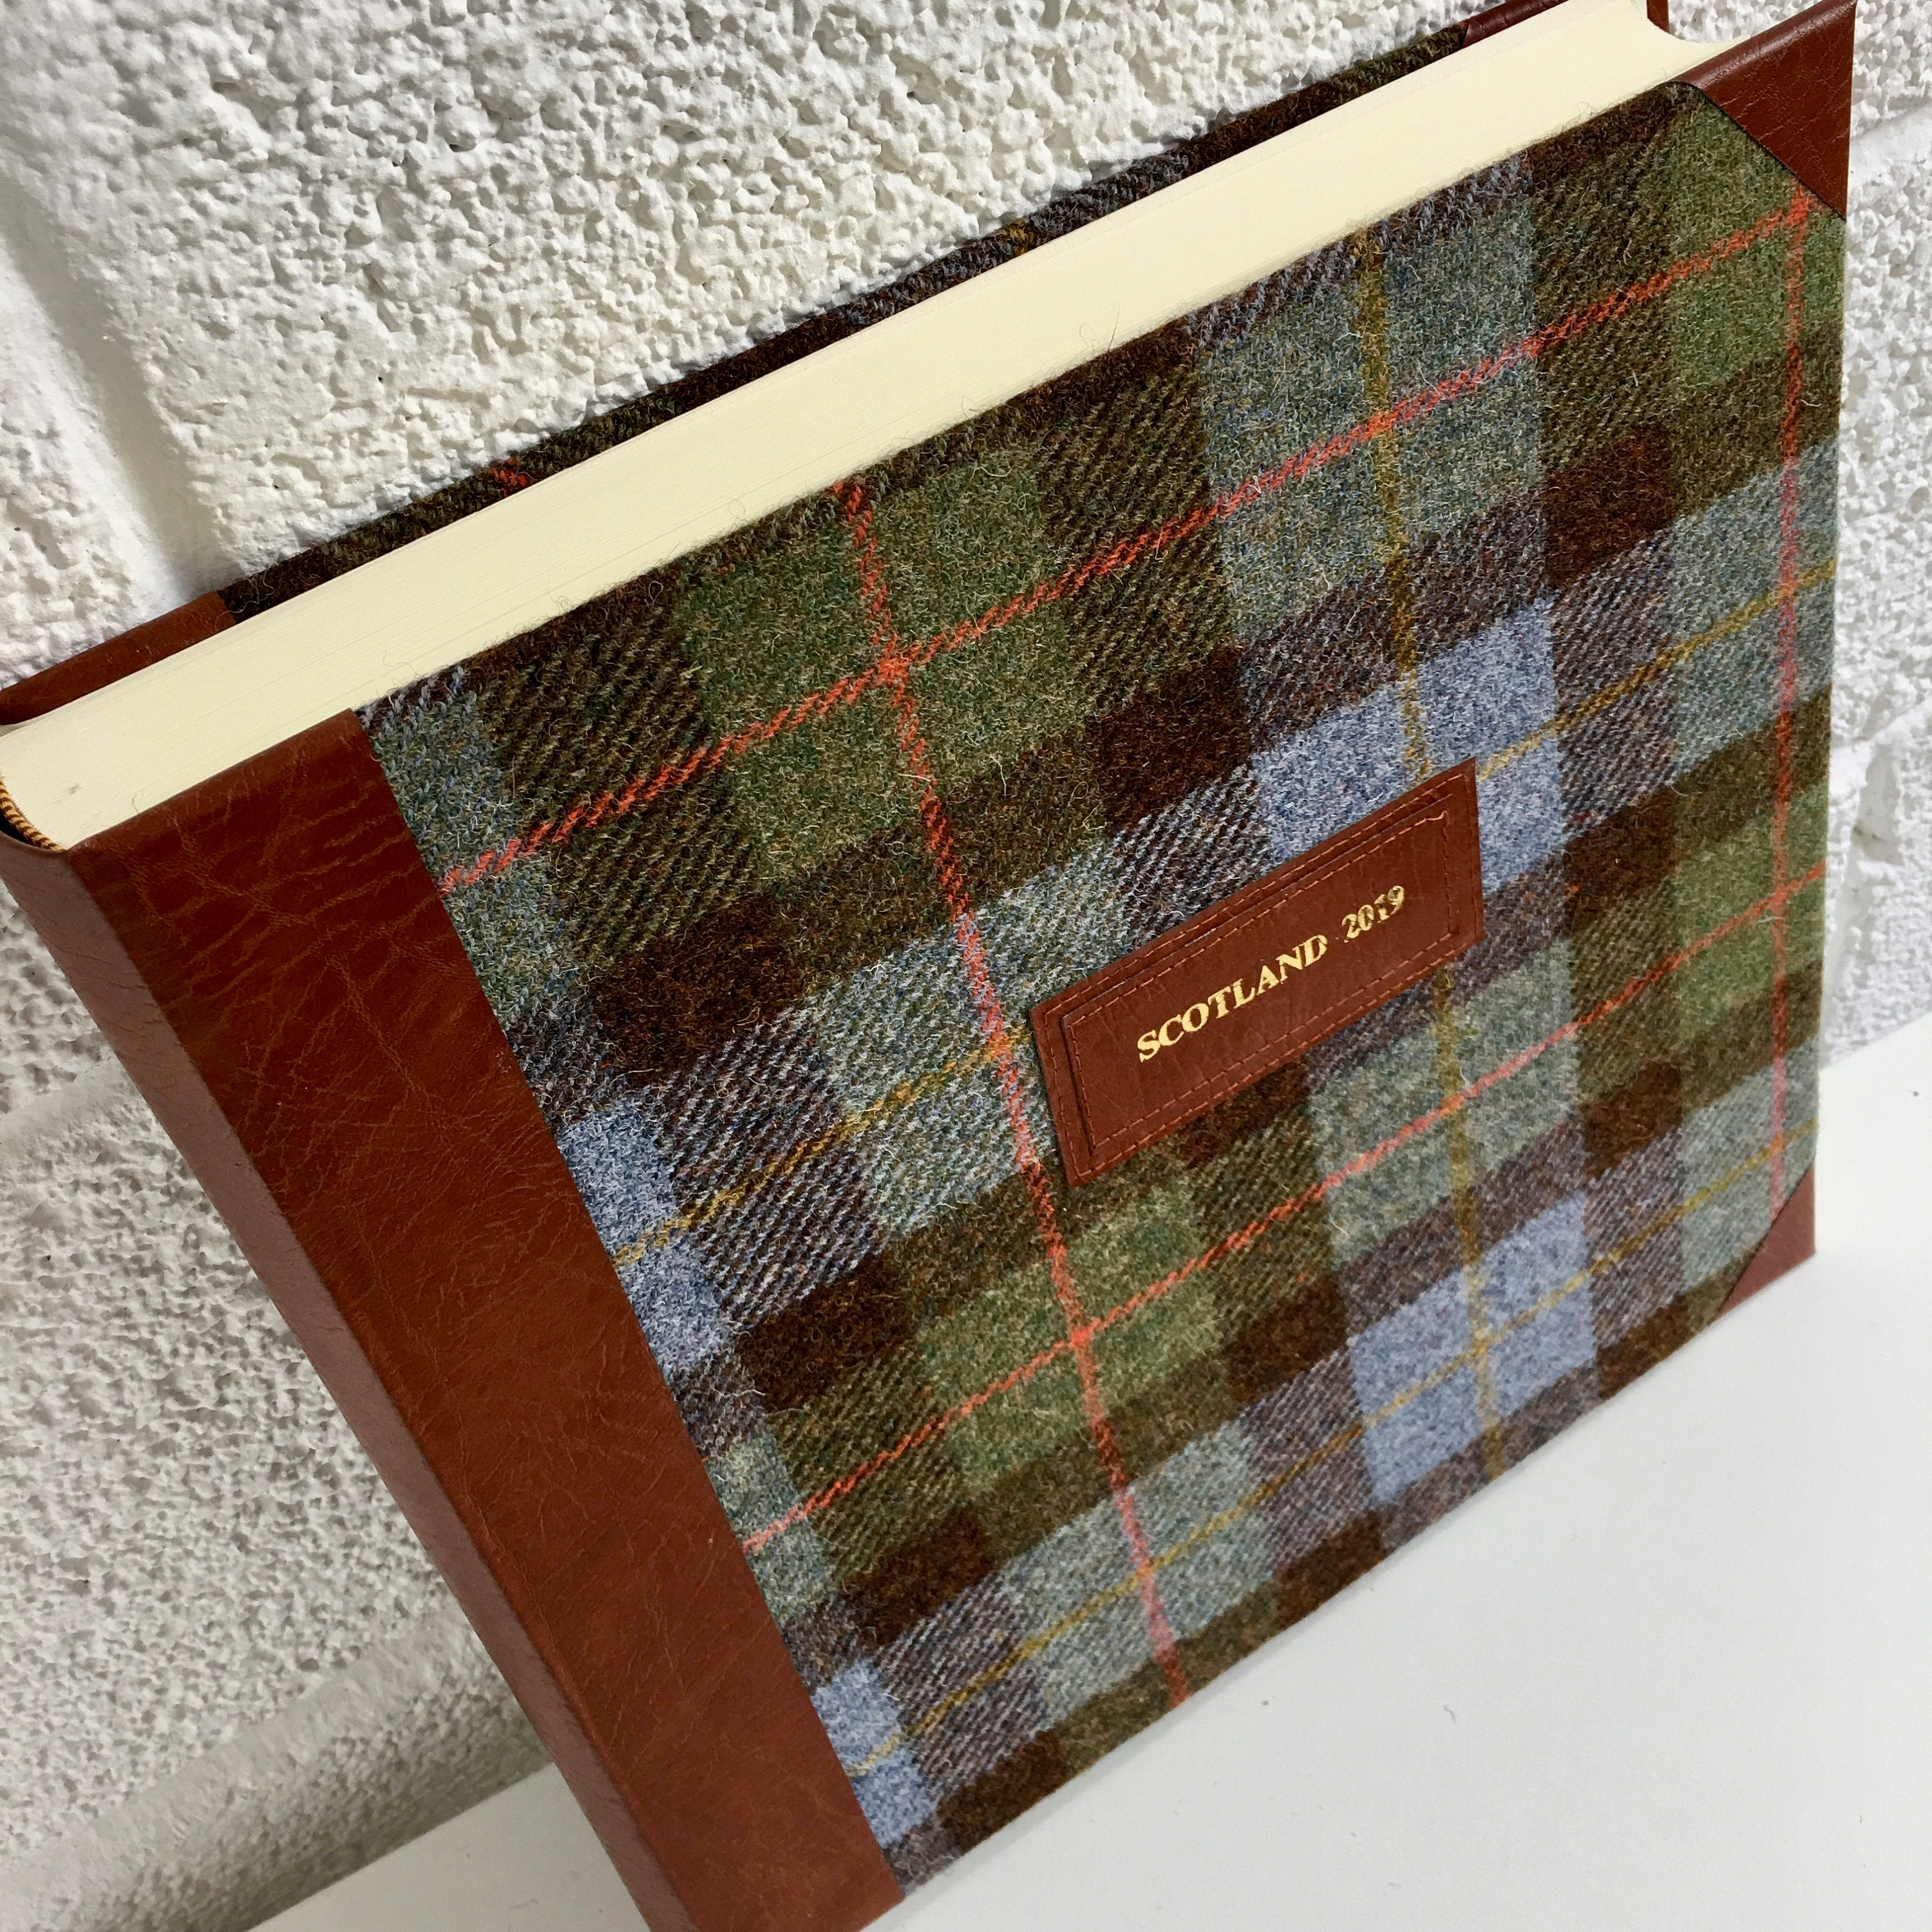 Macleod Harris Tweed and tan leather photo album with personalisation 'SCOTLAND 2017' embossed in gold on tan leather label sewn on front cover